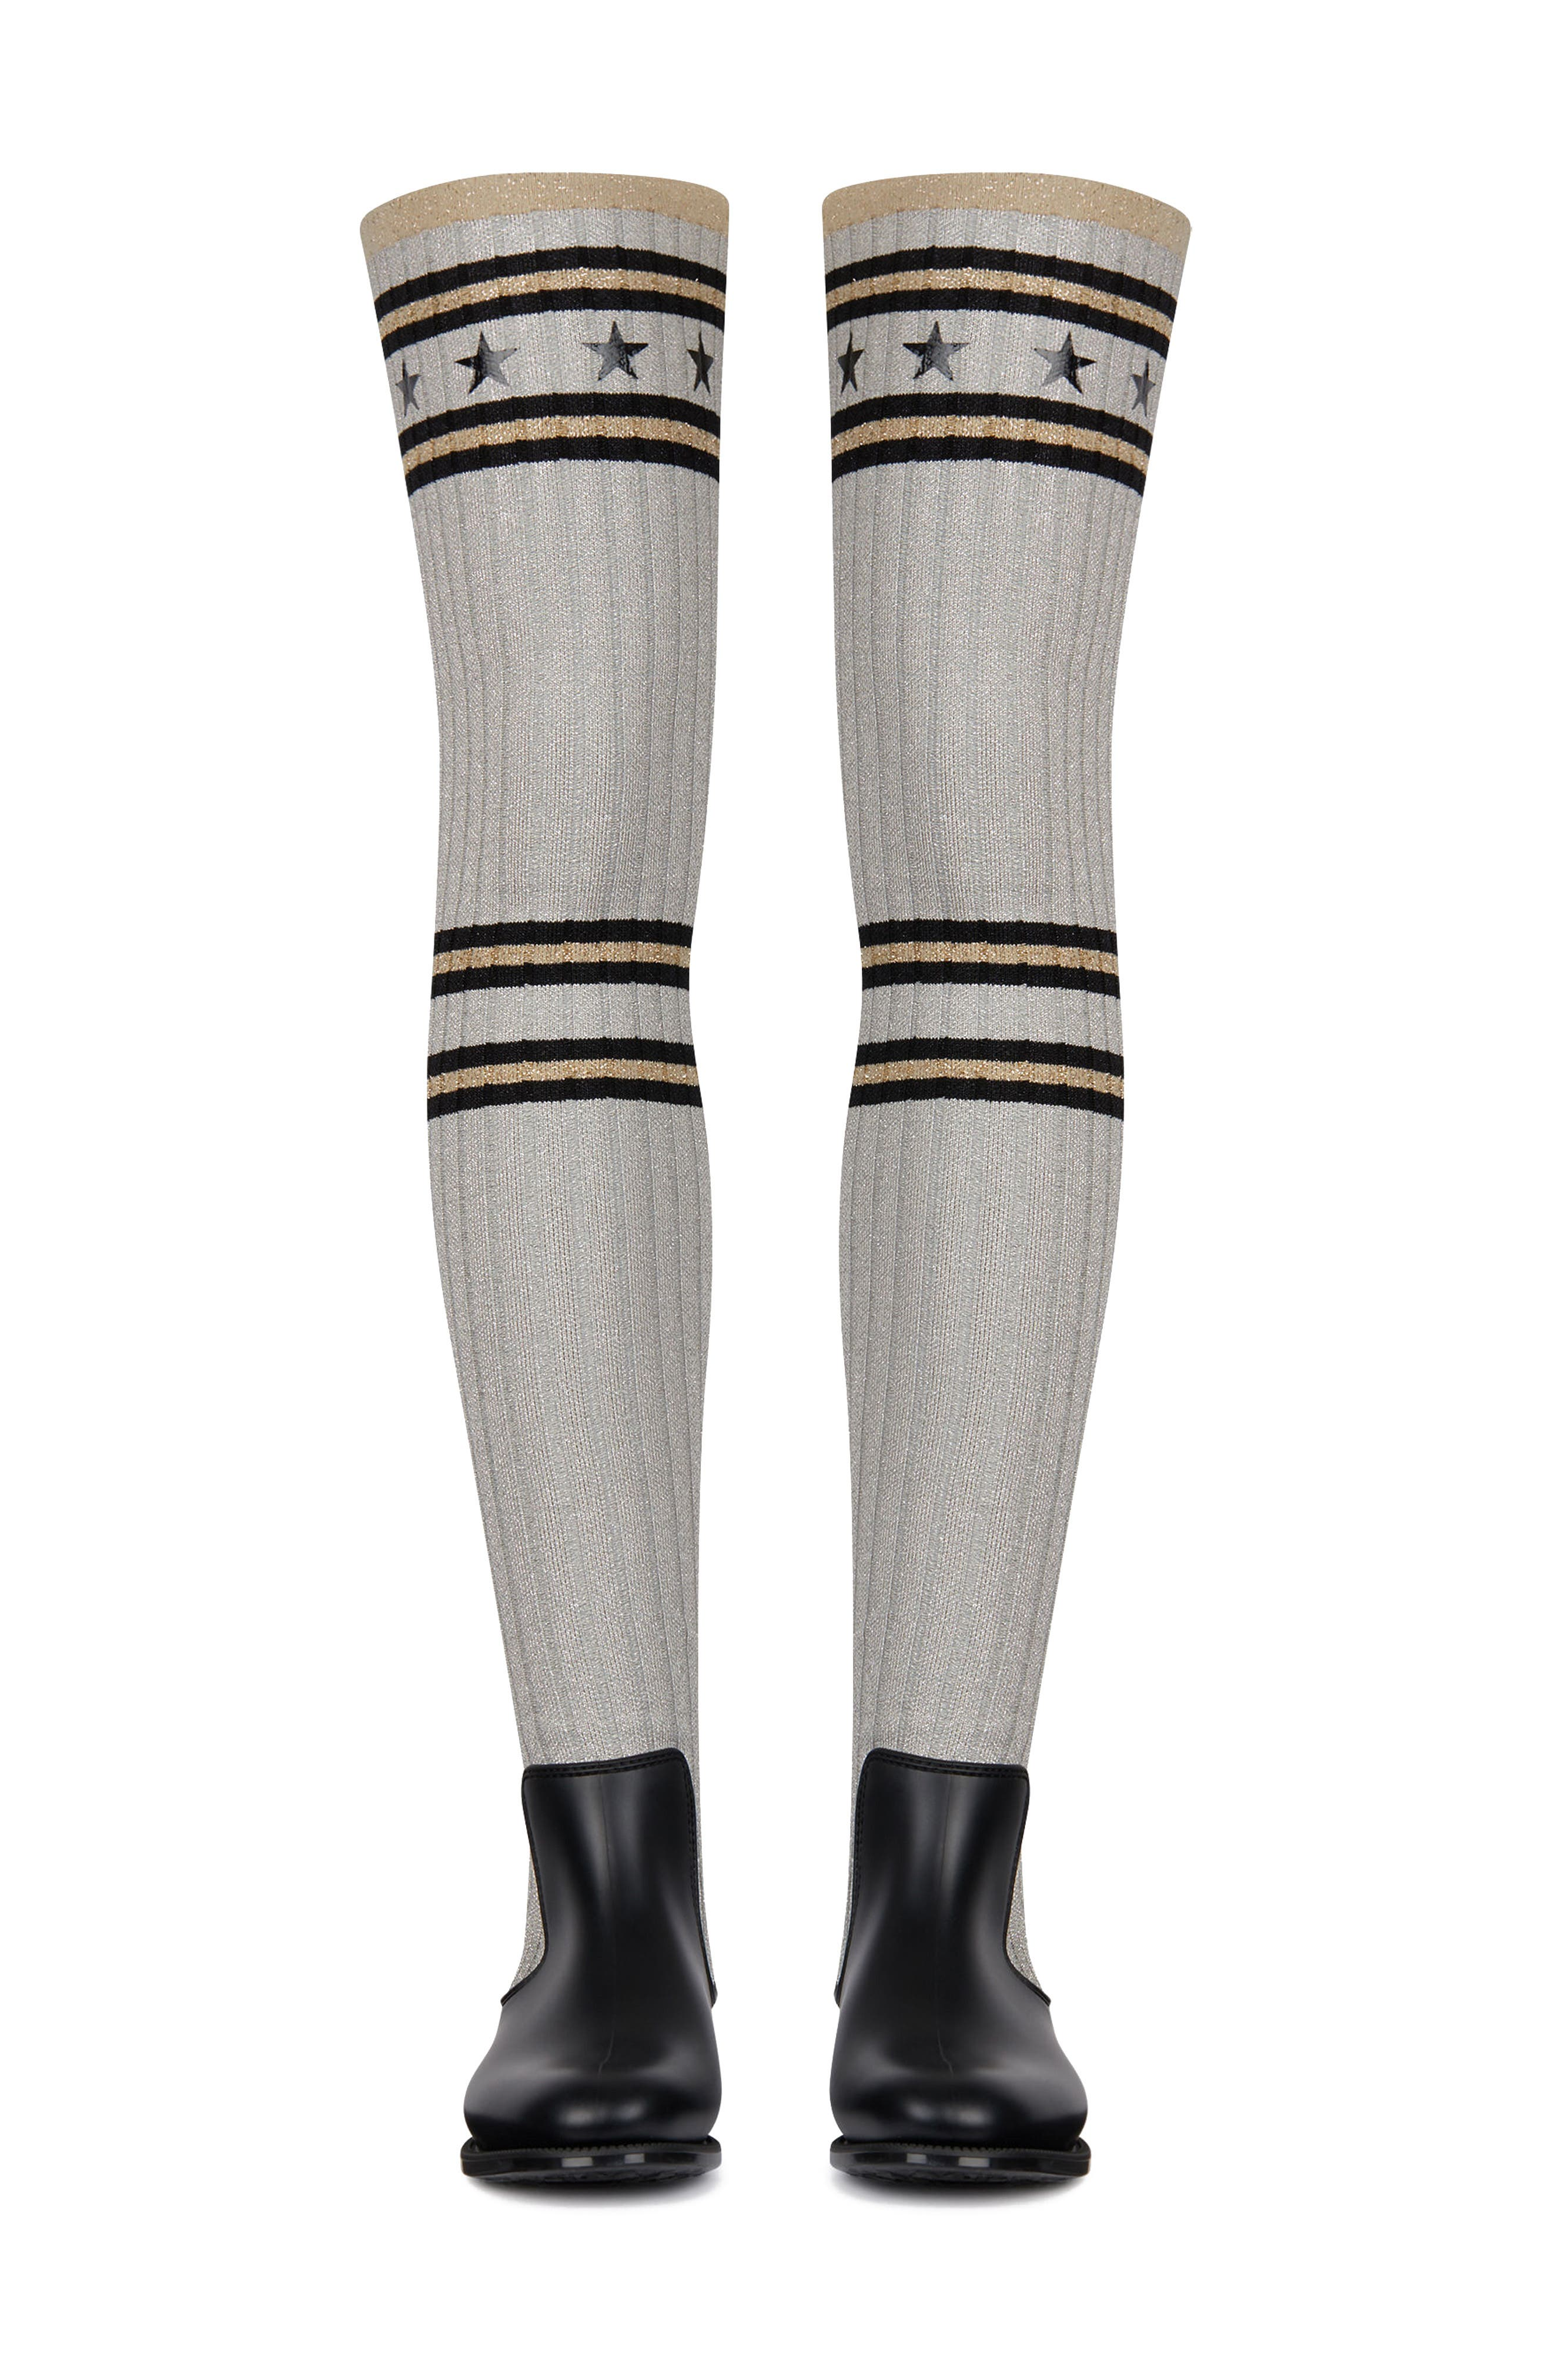 Storm Over the Knee Rain Boot,                         Main,                         color, Grey/ Silver/ Gold